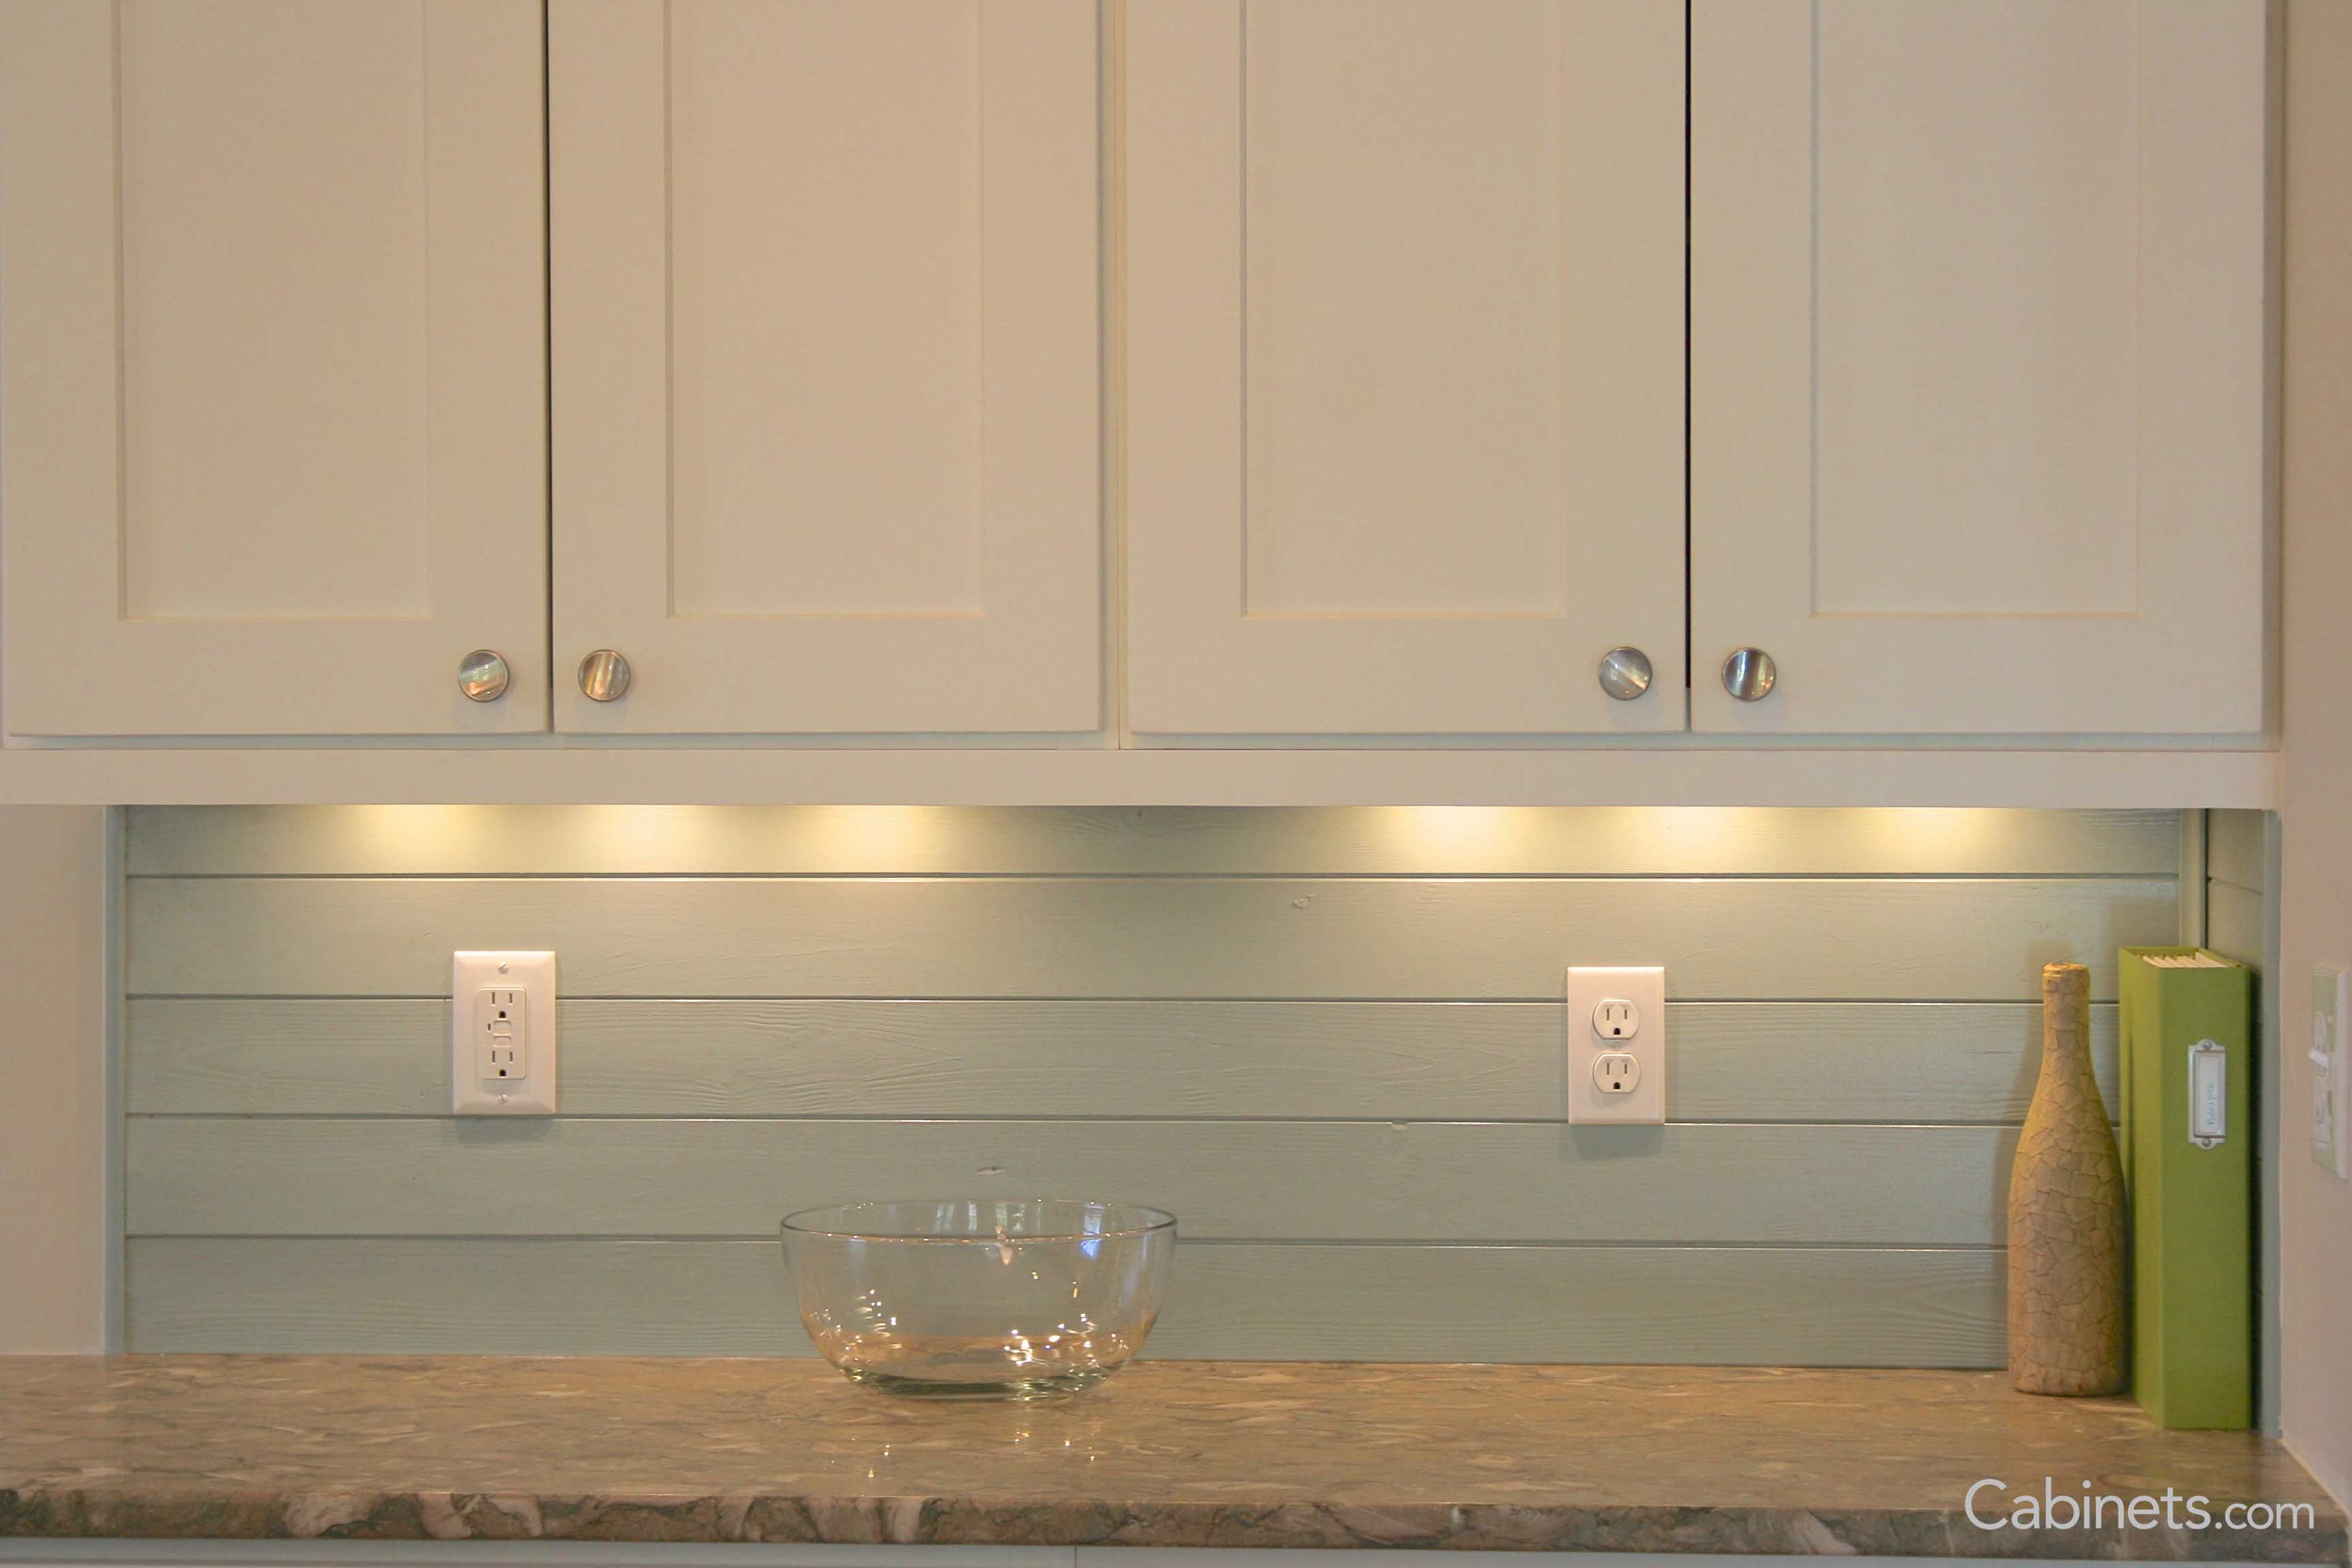 Think Outside The Tile Box When It Comes To Your Backsplash Shiplap Is A Great Alternative Especially When It Adds A Hint Of Color